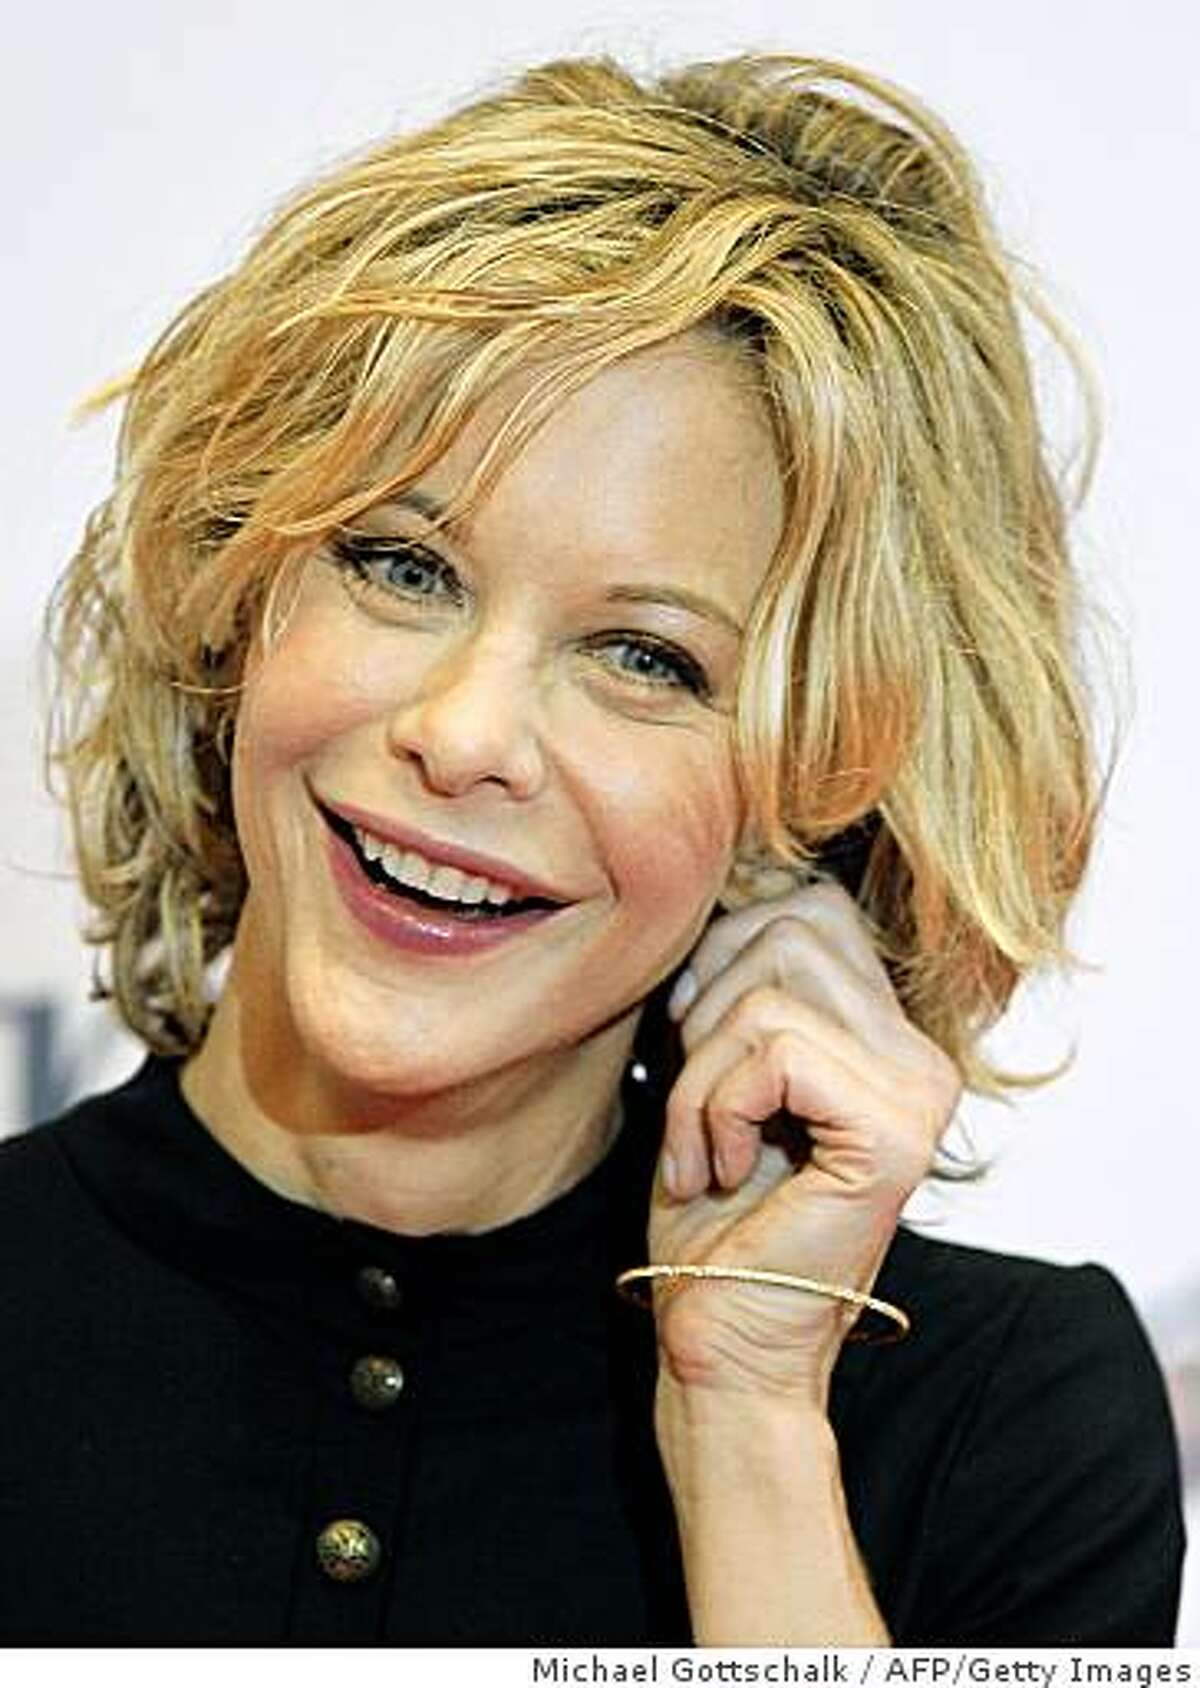 """Meg Ryan just listed her Bel-Air house at $19.5 million. US actress Meg Ryan poses during a photocall for the movie """"The Women,"""" produced by Mick Jagger, on November 26, 2008 in Berlin. Meg Ryan will get a German lifetime achievement """"Bambi"""" award for best international actress and will pick up the statuette at the gala ceremony in Offenburg, southern Germany, on November 27, 2008. AFP PHOTO DDP/ MICHAEL GOTTSCHALK GERMANY OUT (Photo credit should read MICHAEL GOTTSCHALK/AFP/Getty Images)"""